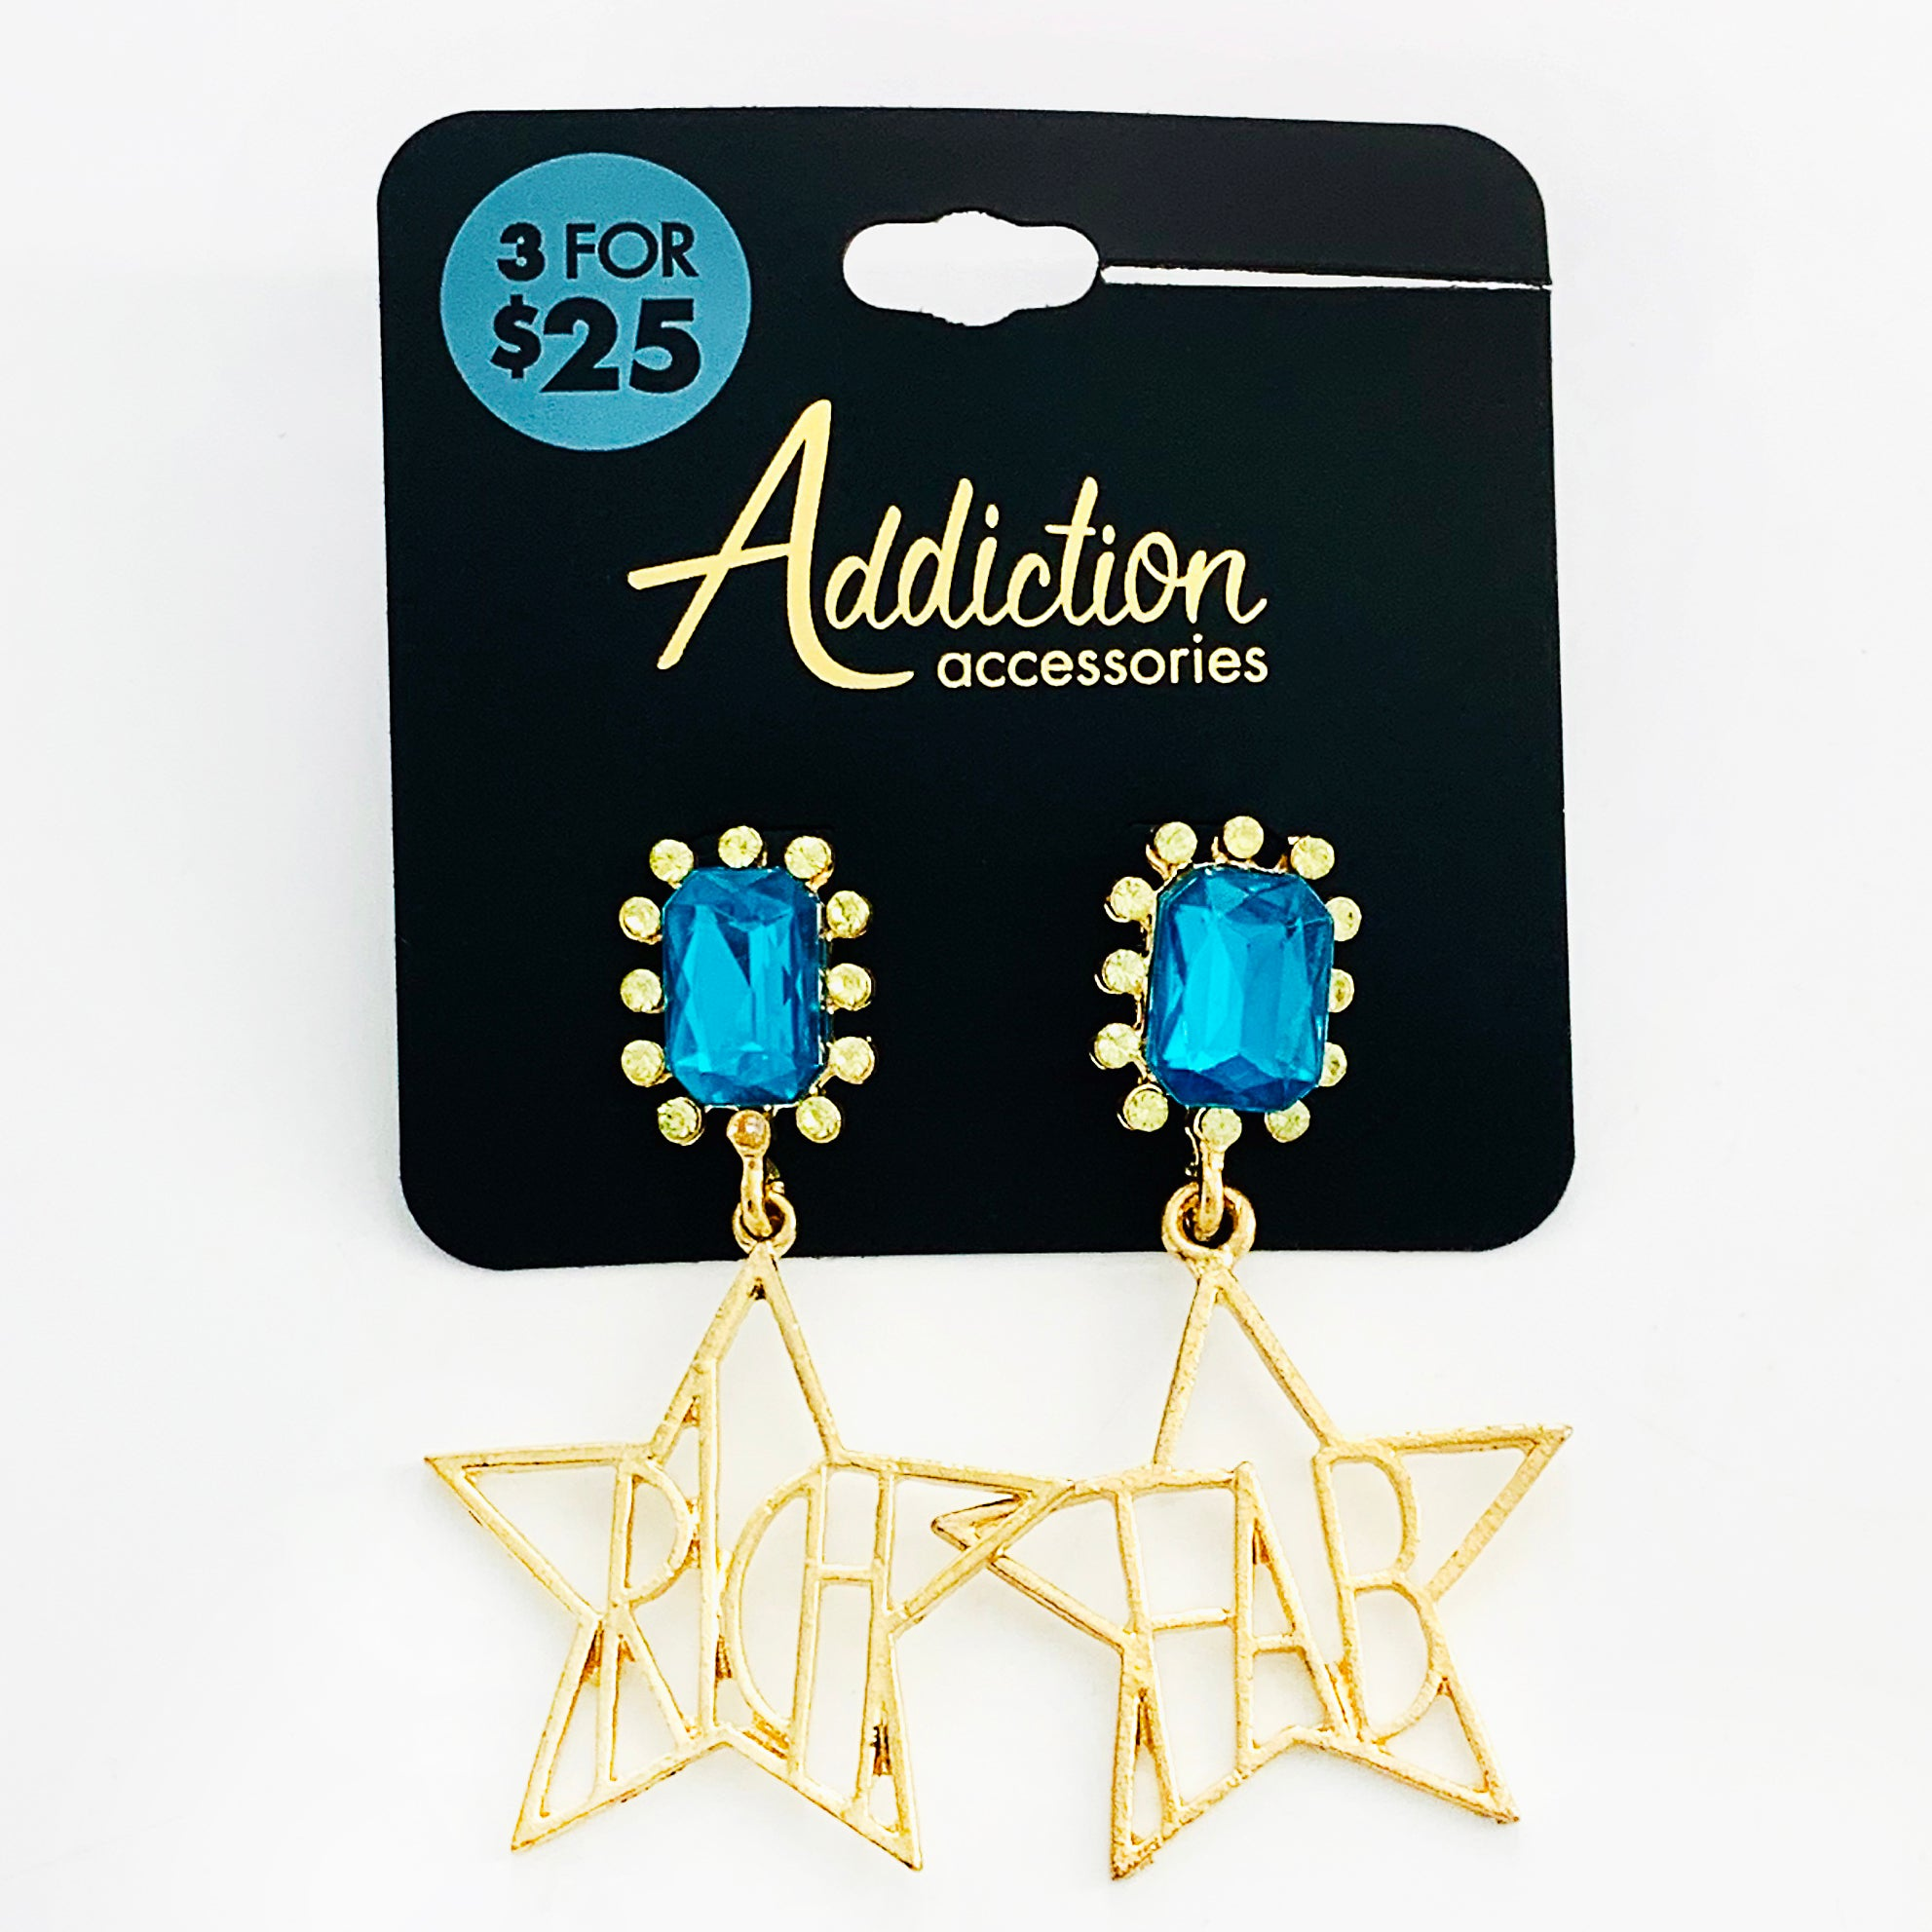 Fabulous star earrings with blue stone